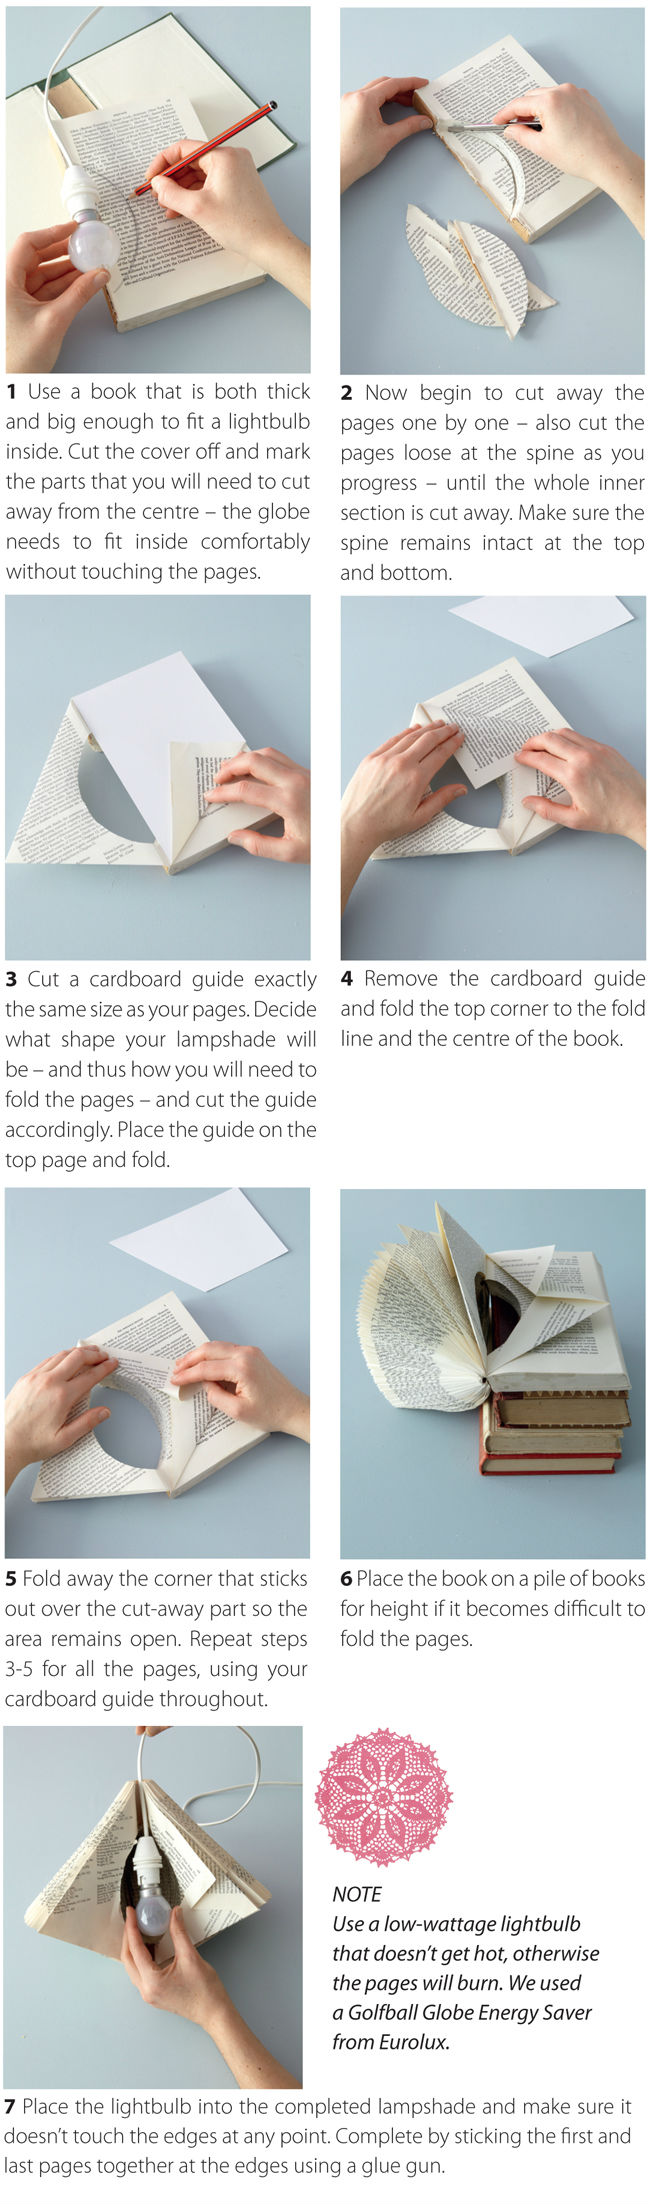 Paper lamp do it yourself 2 pinterest paper lamps craft paper lamp solutioingenieria Image collections